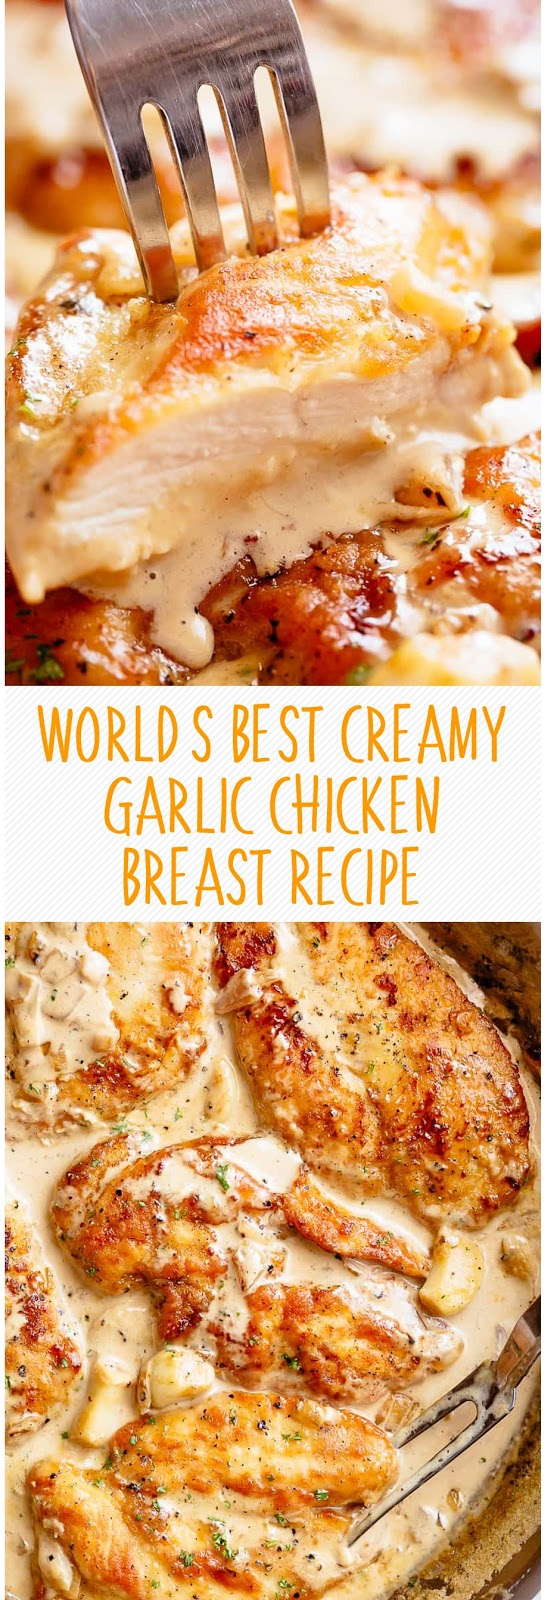 WORLD'S BEST CREAMY GARLIC CHICKEN BREAST RECIPE